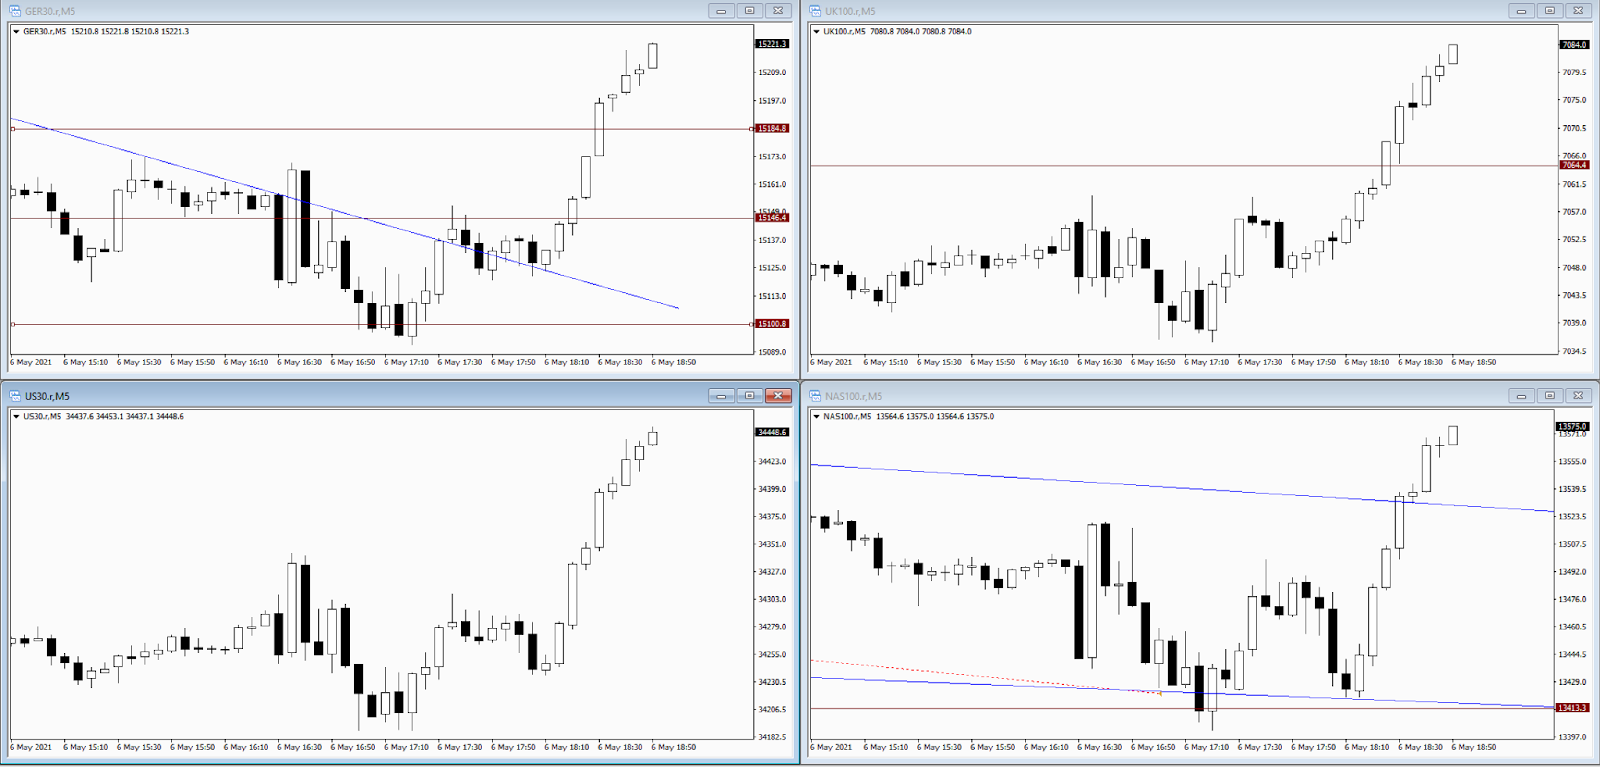 screen layout with 4 charts of US30 DAX30 UK100 FTSE100